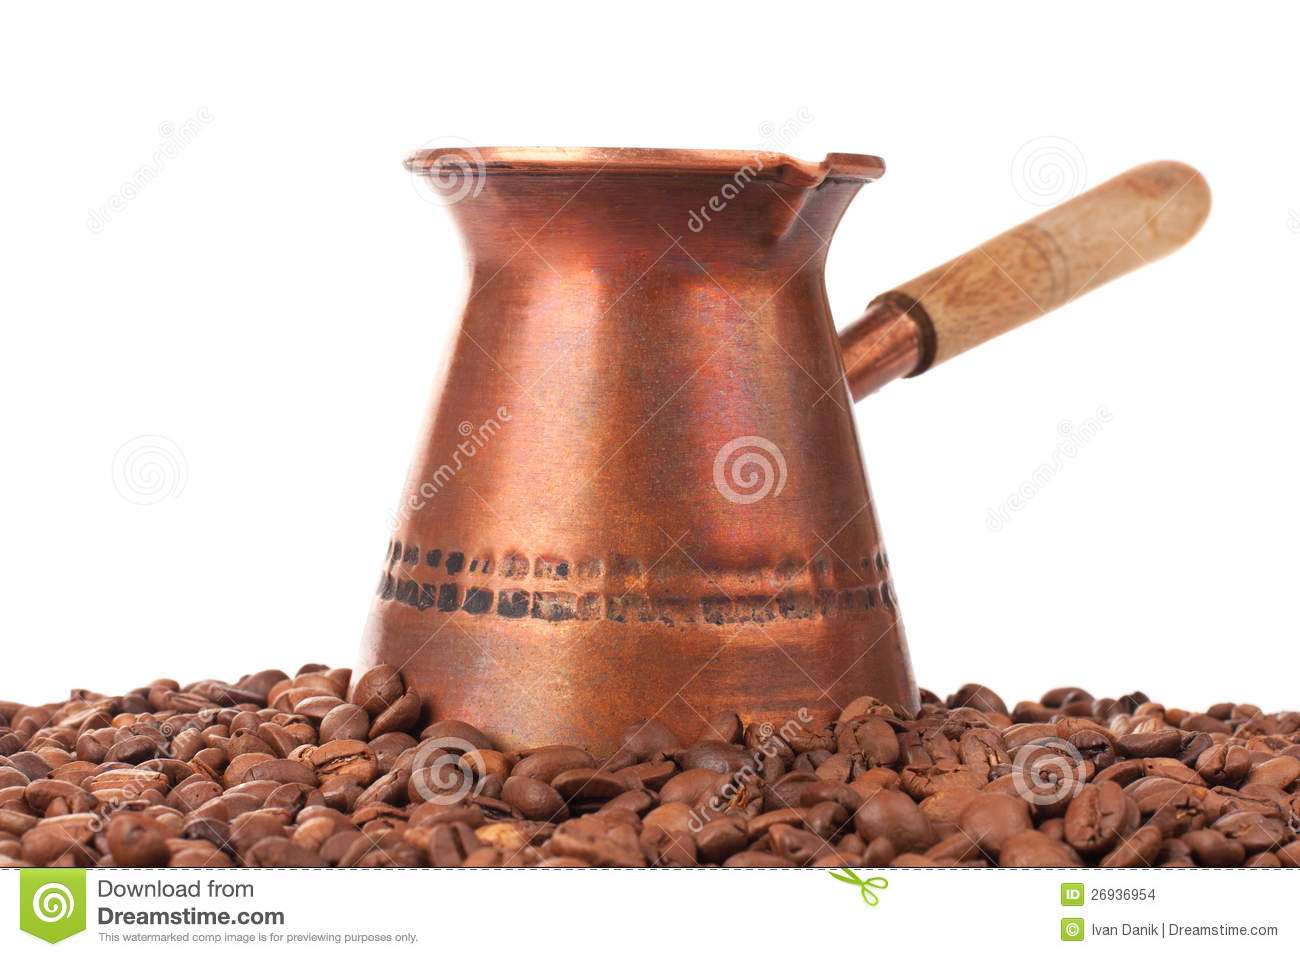 Turkish Coffee Pot And Coffee Beans Stock Images - Image: 26936954